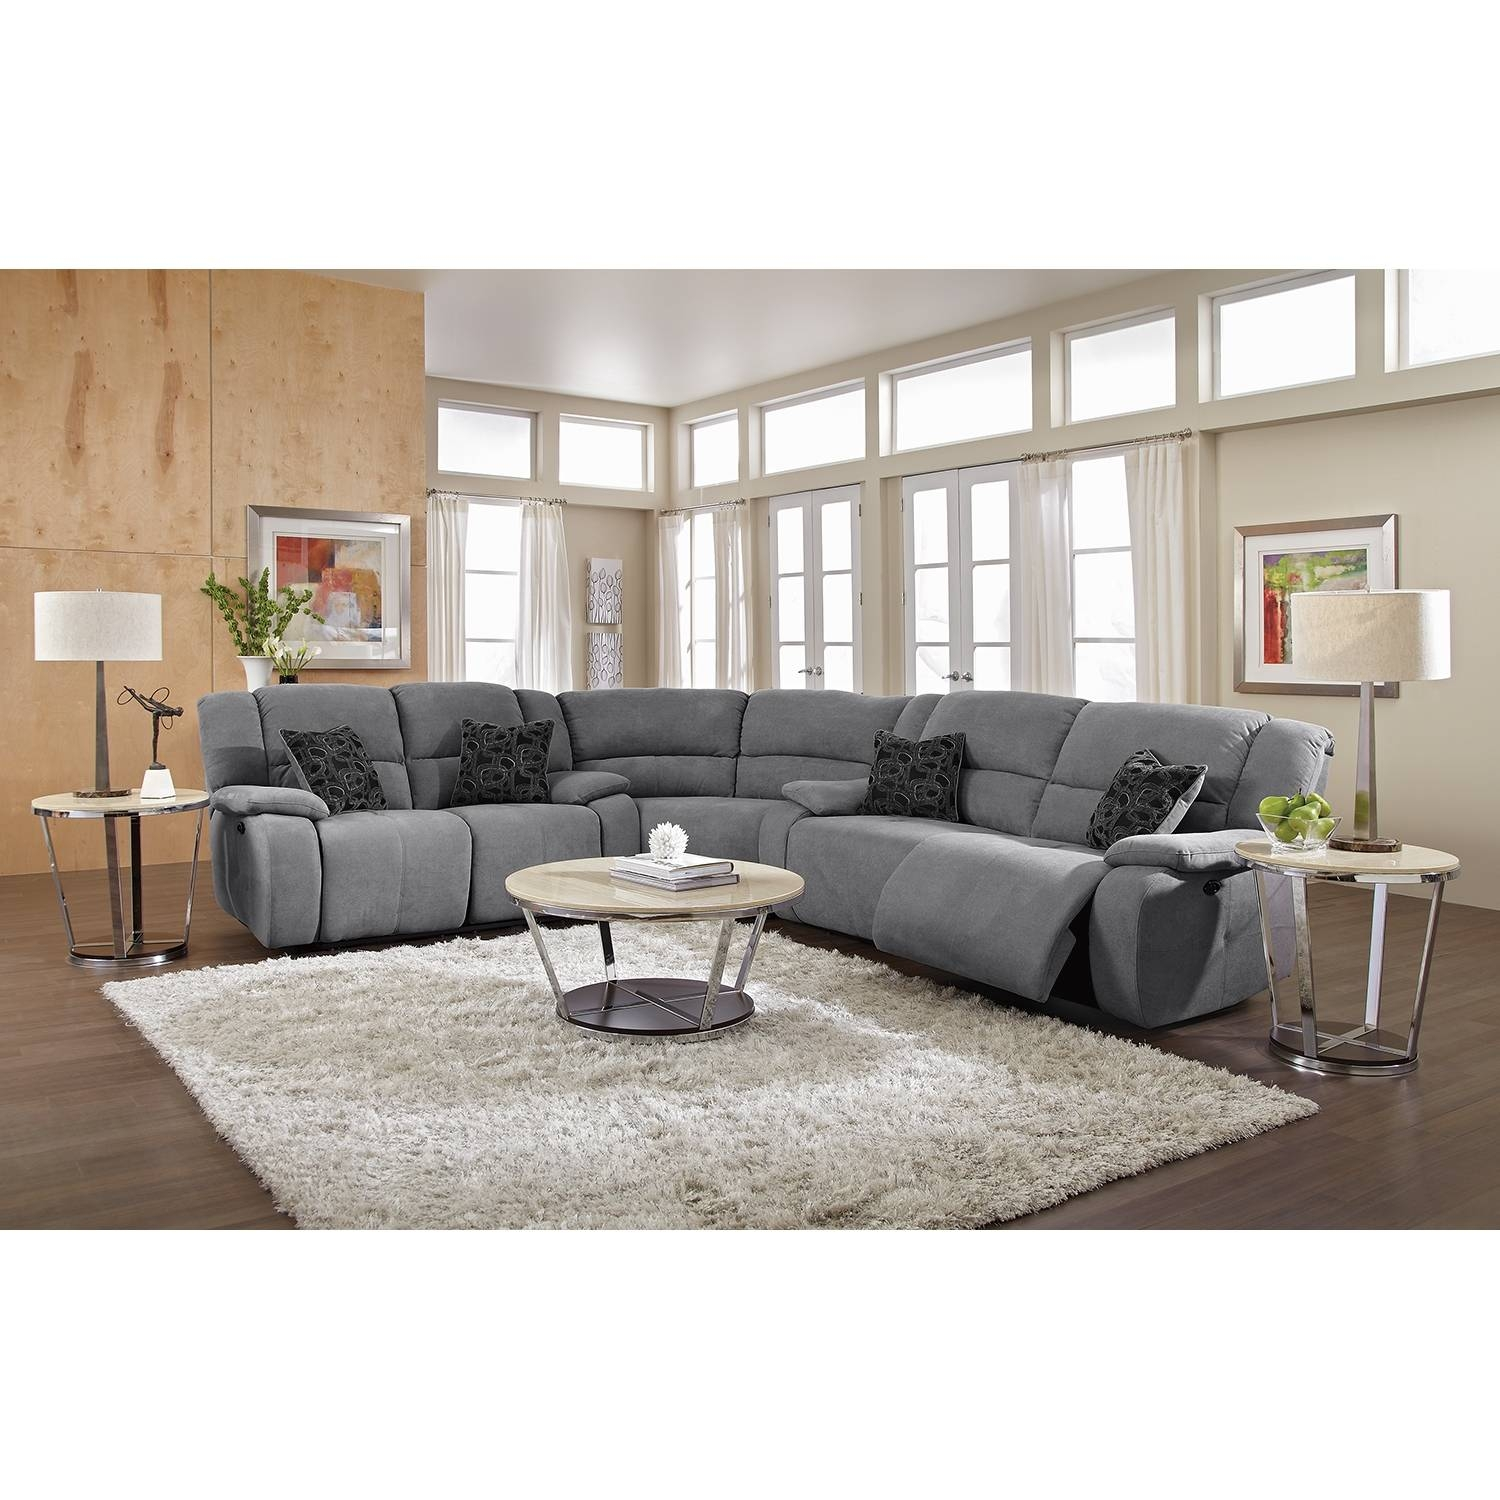 Interesting Curved Sectional Sofa With Recliner 11 In Modern in Curved Sectional Sofas With Recliner (Image 11 of 15)